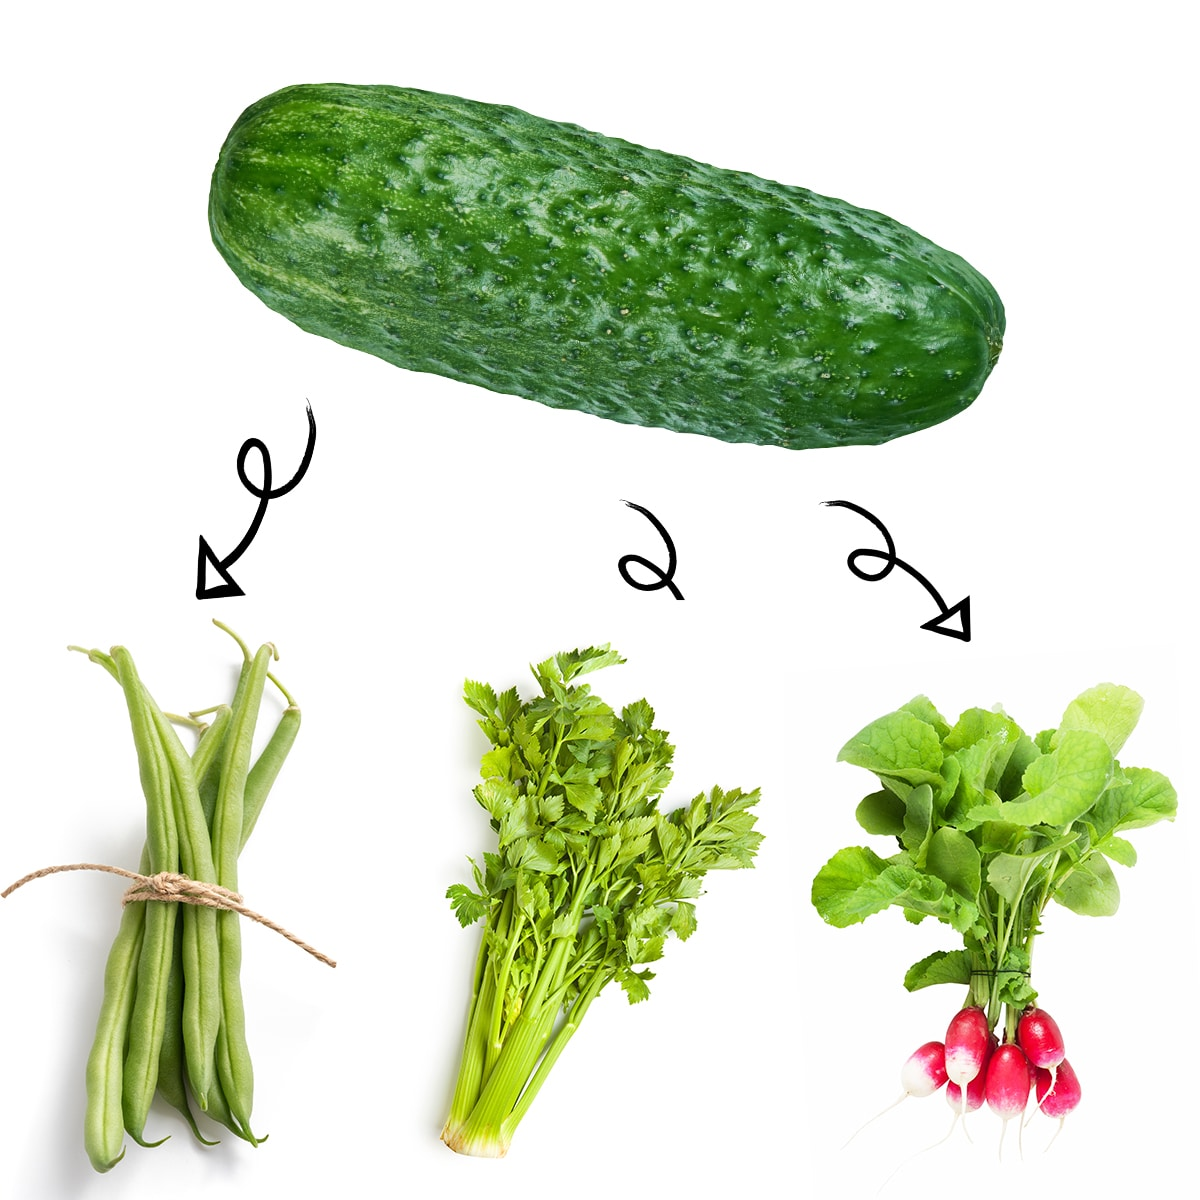 Bright white graphic of ripe cucumber with arrows linking it to a bundle of green beans, stalks of celery, and bright red radishes.